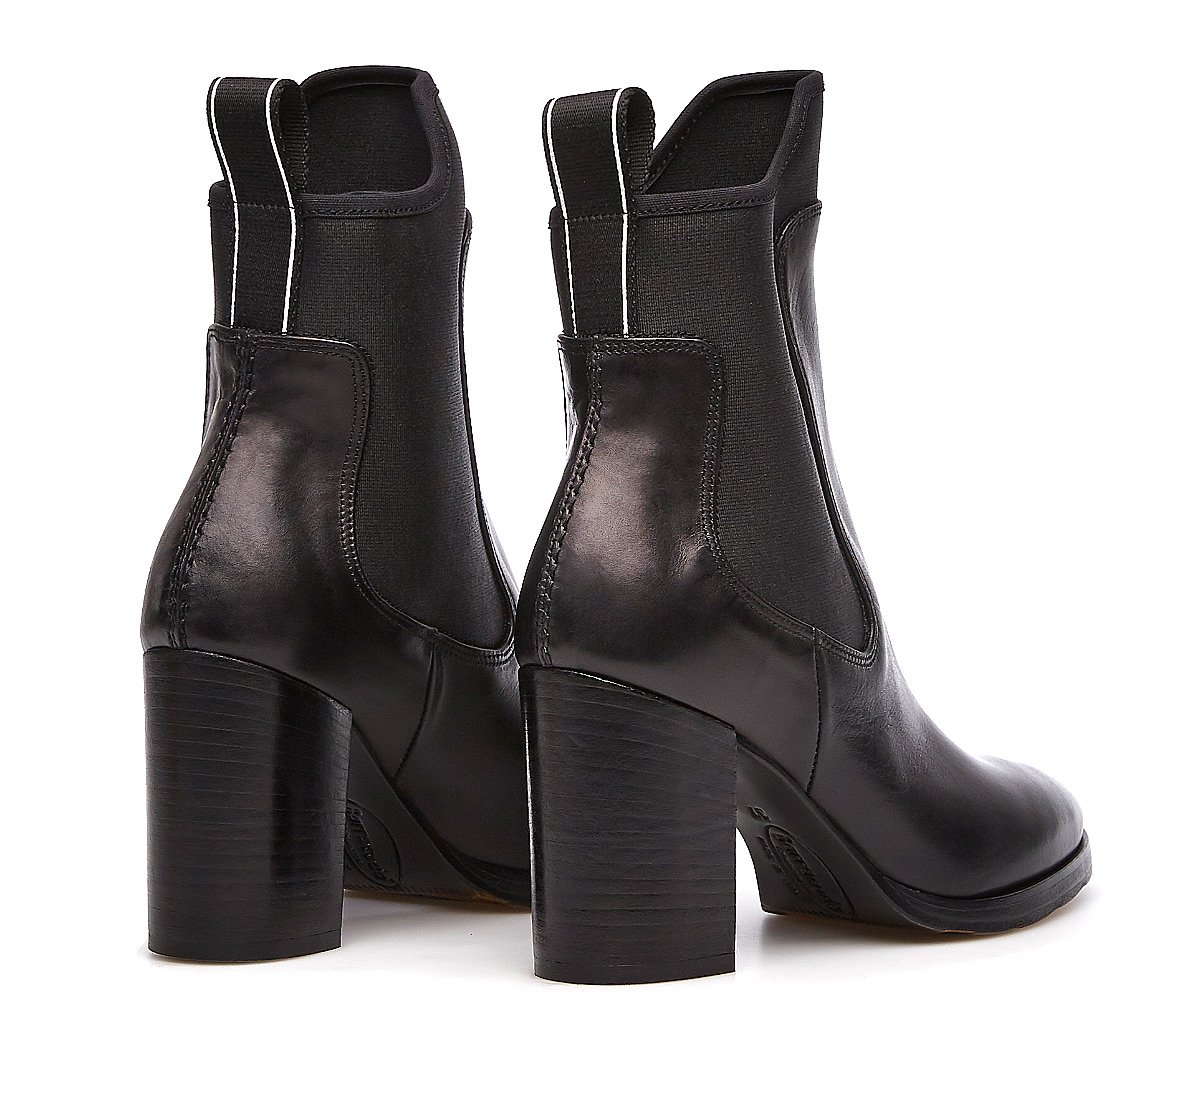 Boots in calf leather